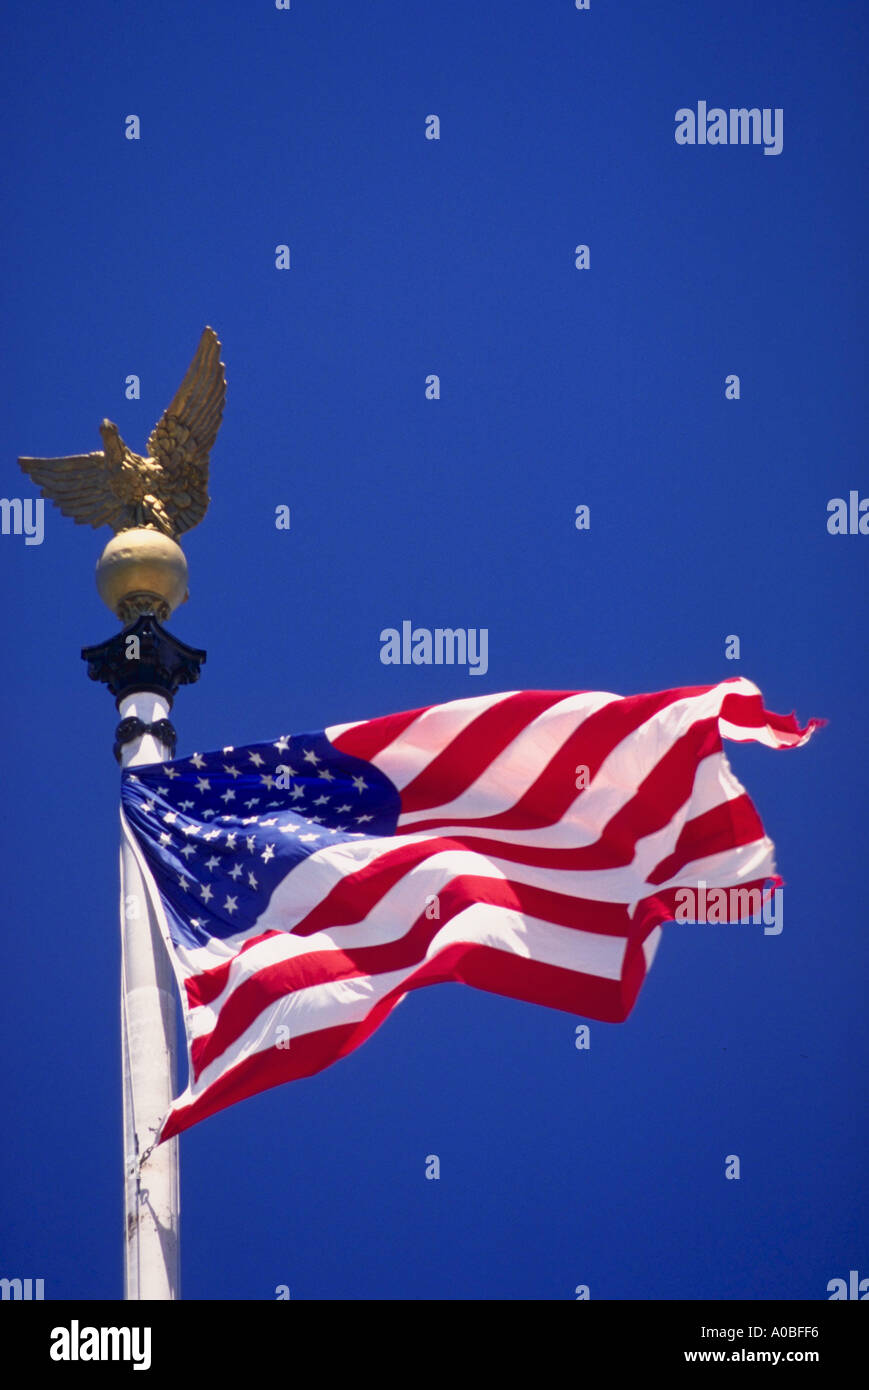 Eagle and American flag - Stock Image